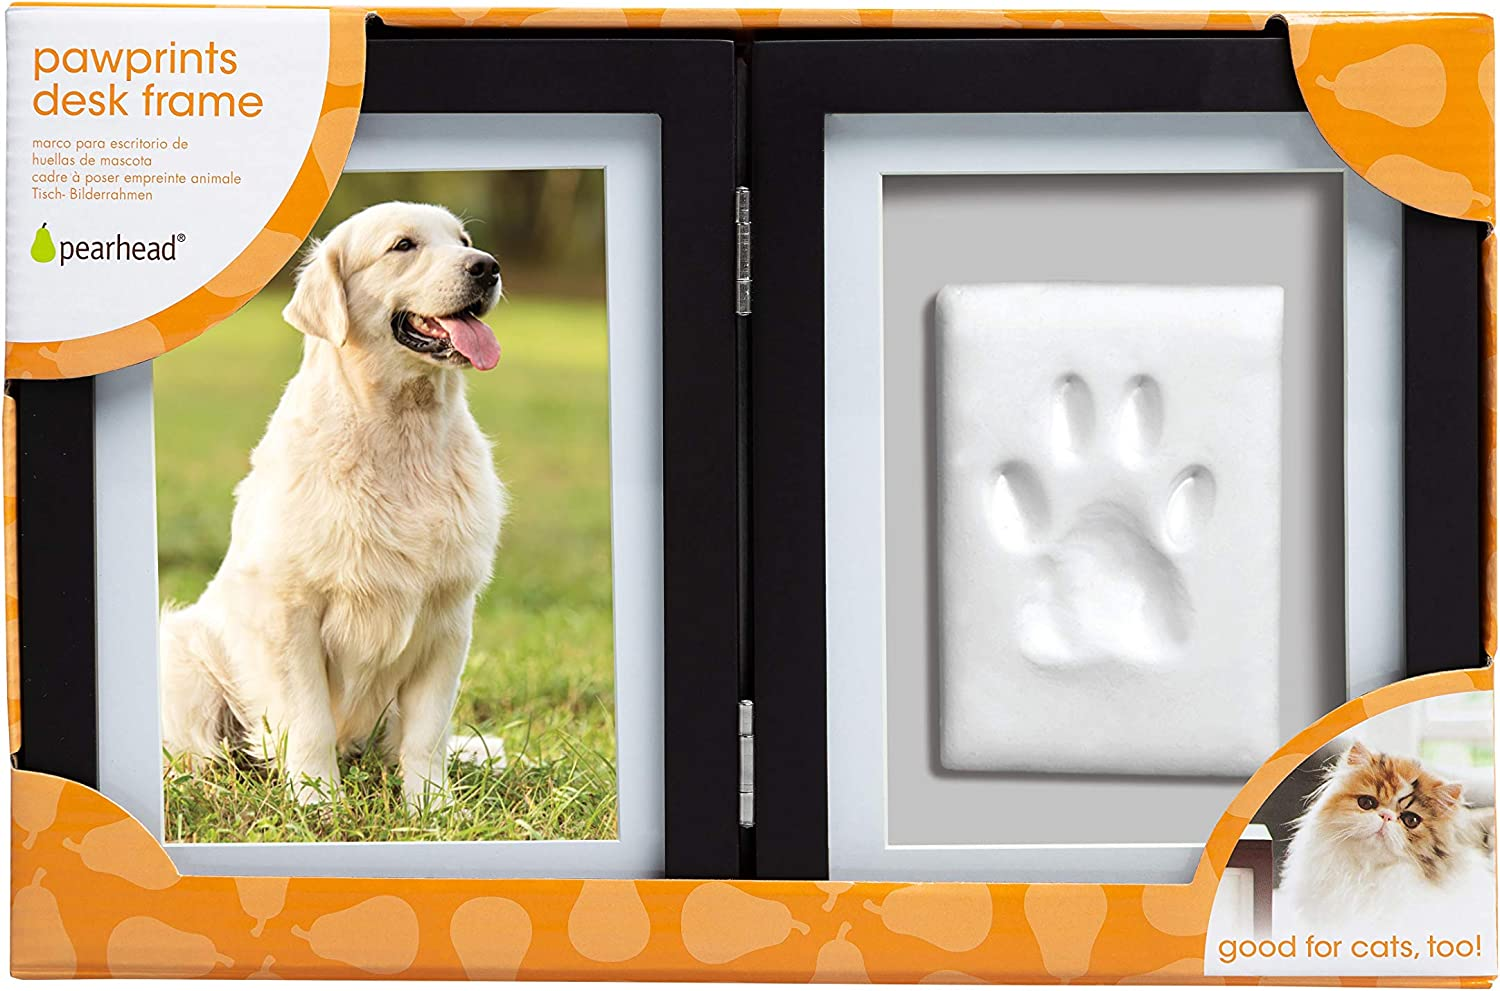 Black Pearhead Pawprints Desk Frame and Clay